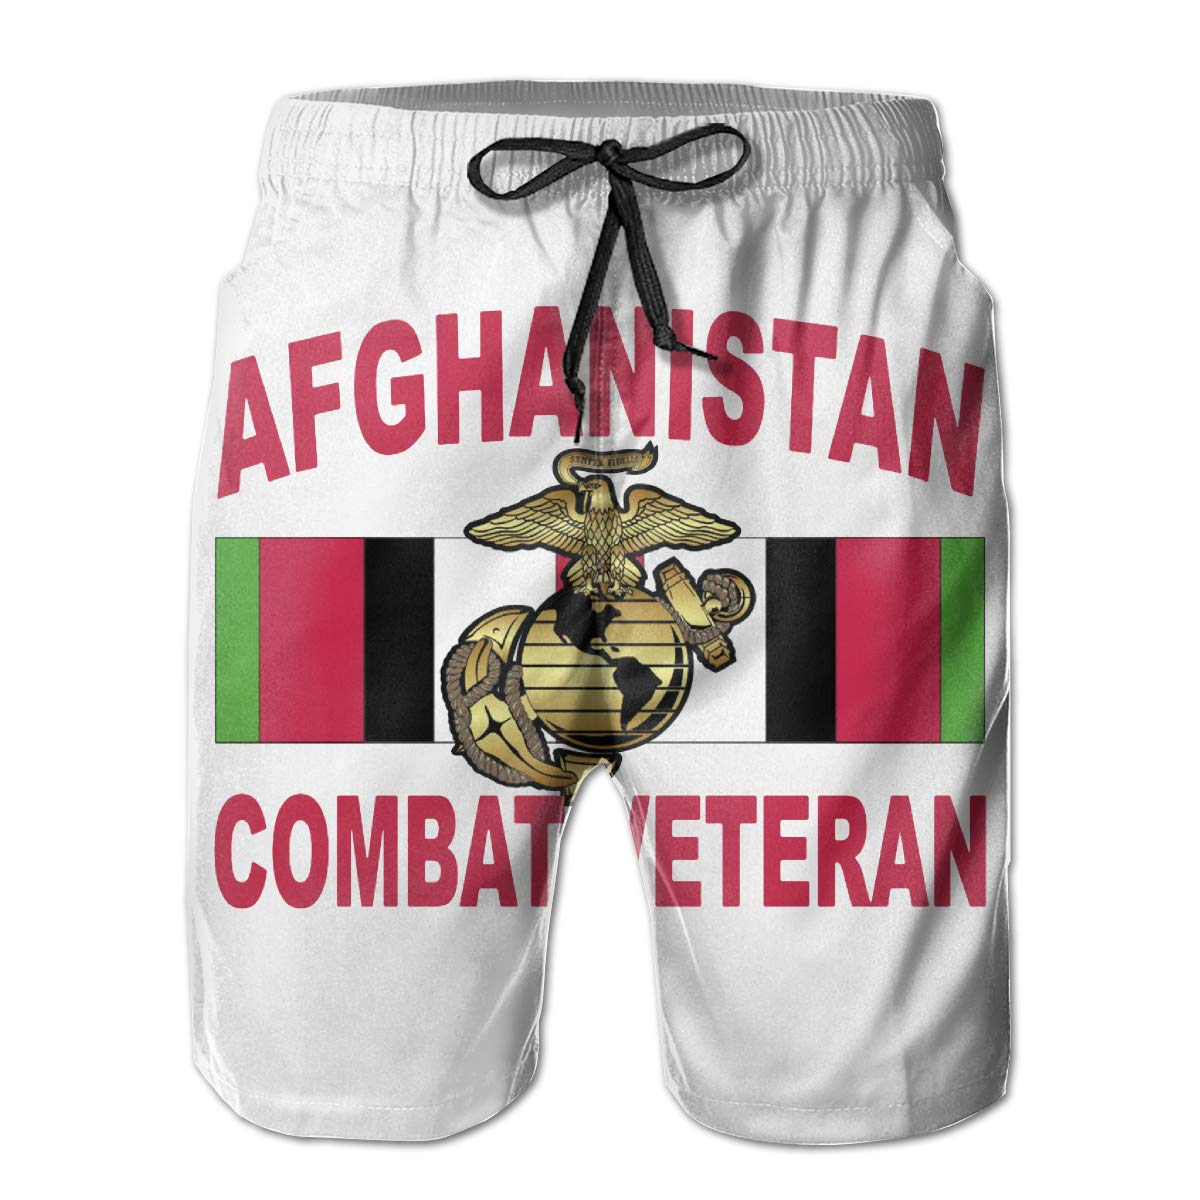 USMC Eagle Globe and Anchor Afghanistan Veteran Men Swim Trunks Quick Dry Waterproof Beach Pants Beach Board Shorts